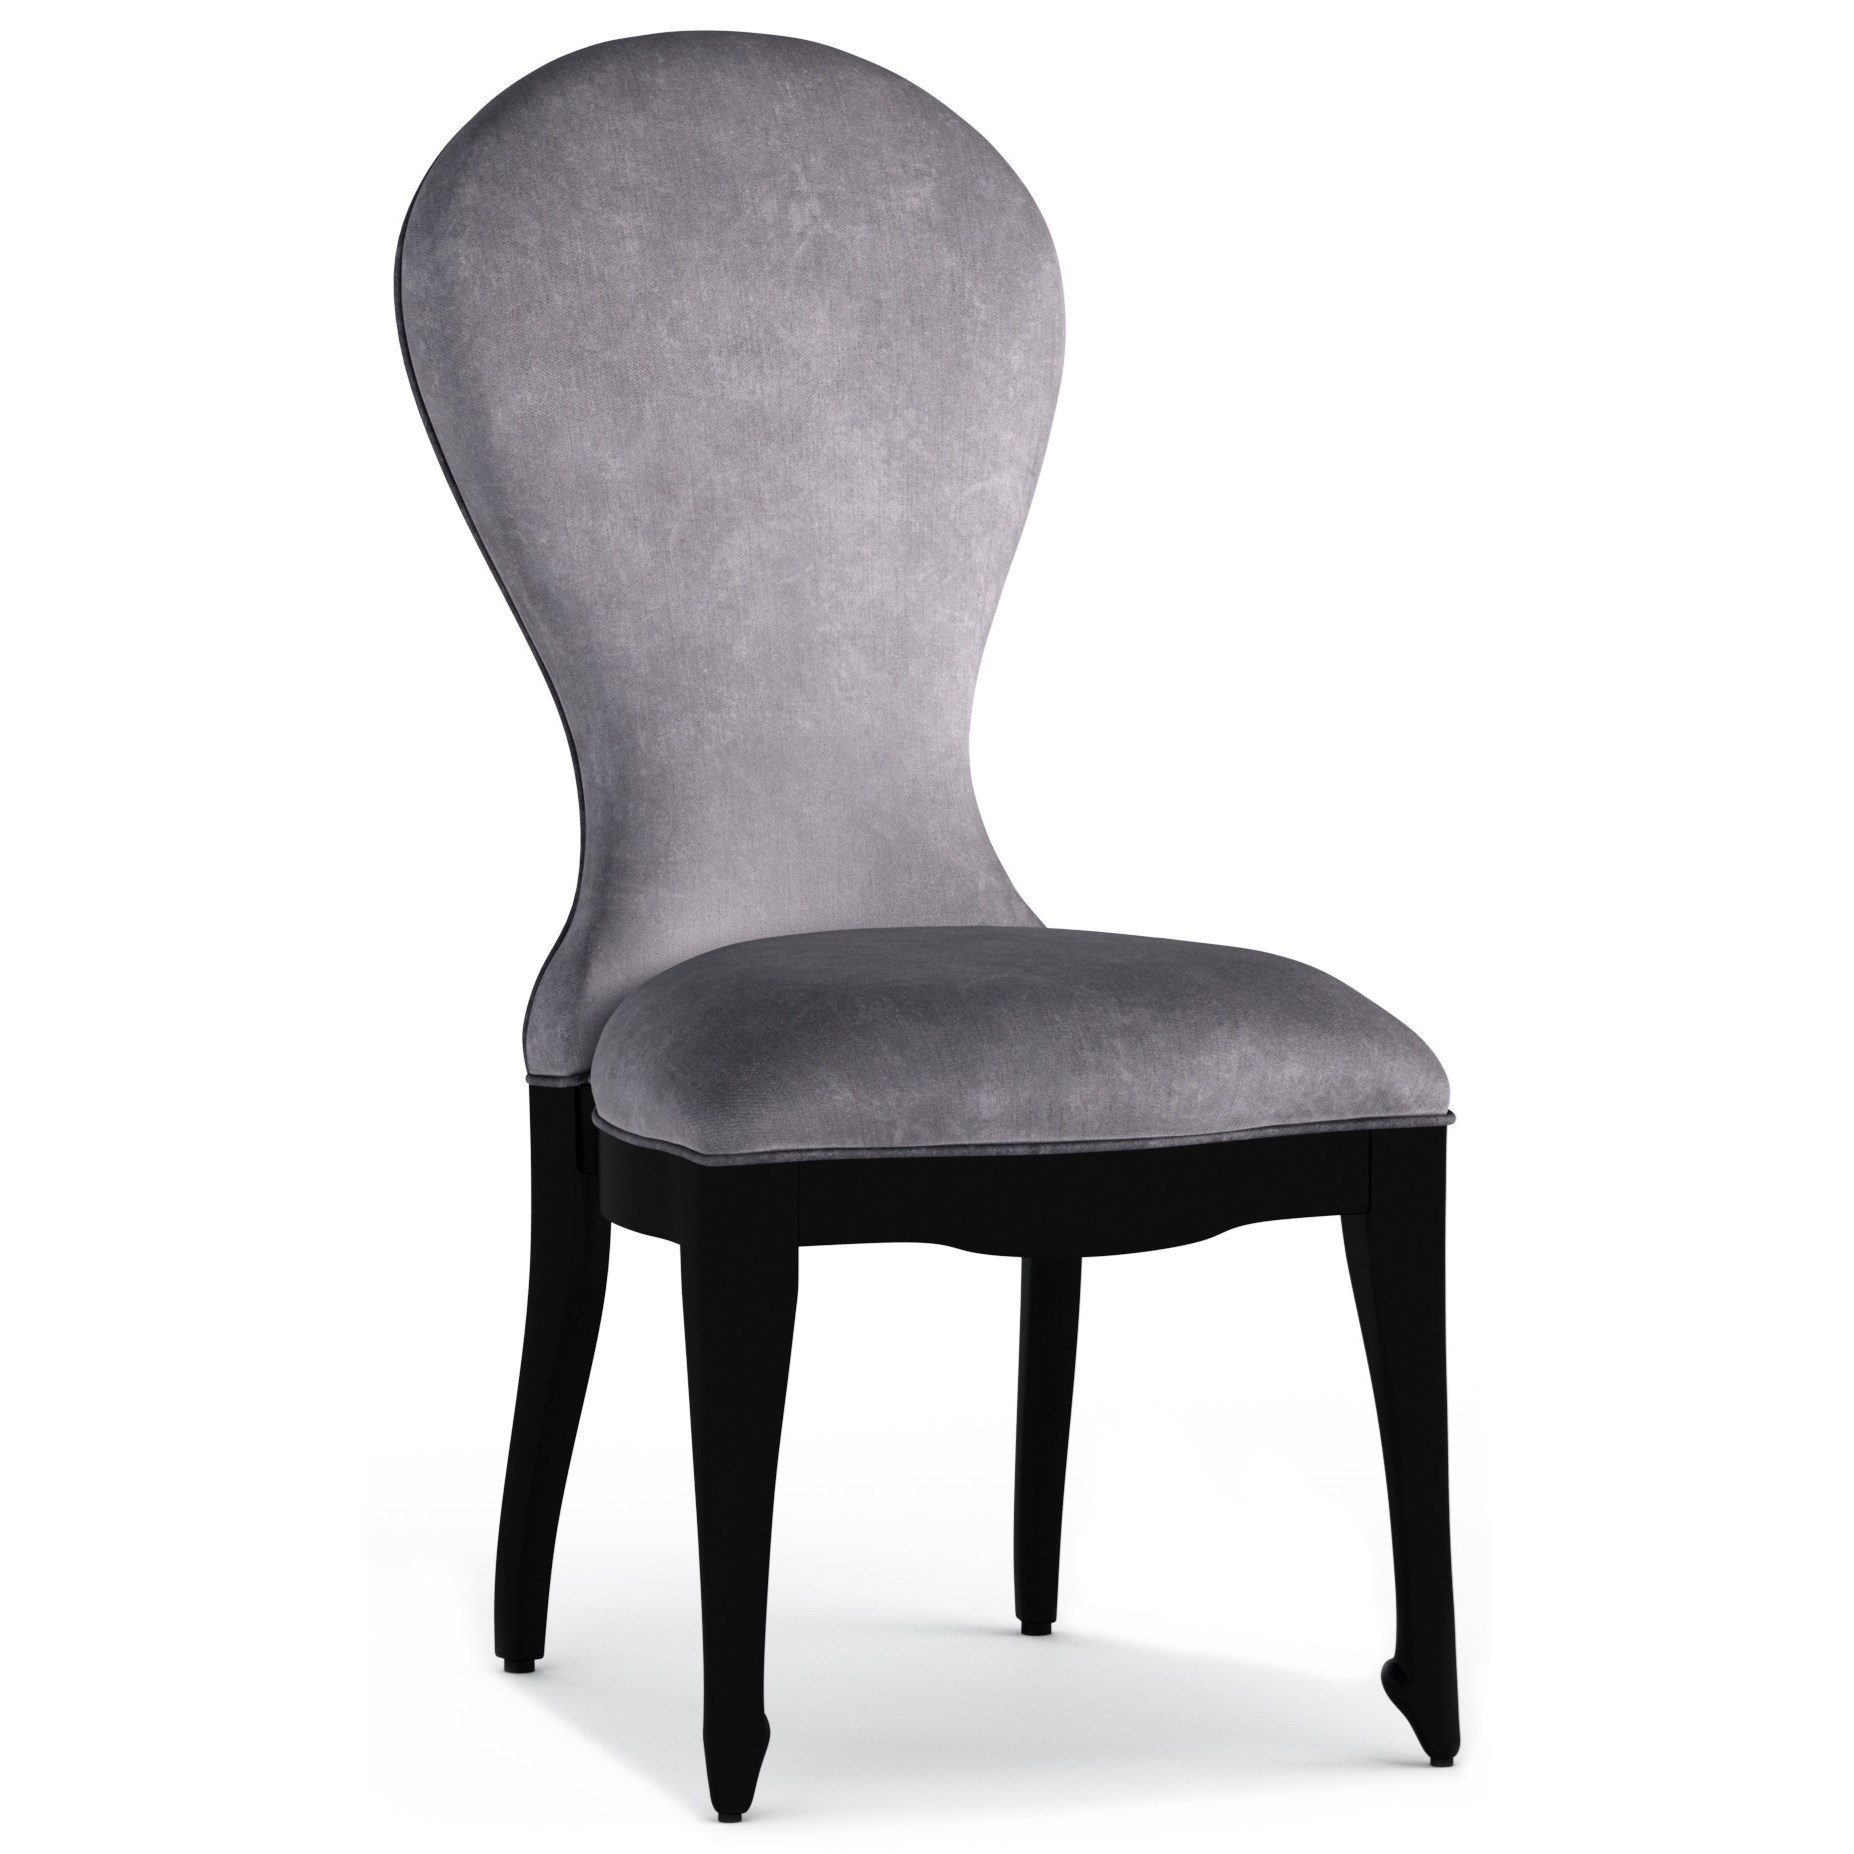 cynthia rowley chairs at marshalls steelcase reply chair for hooker furniture pretty 1586 prettyen pointe upholstered side